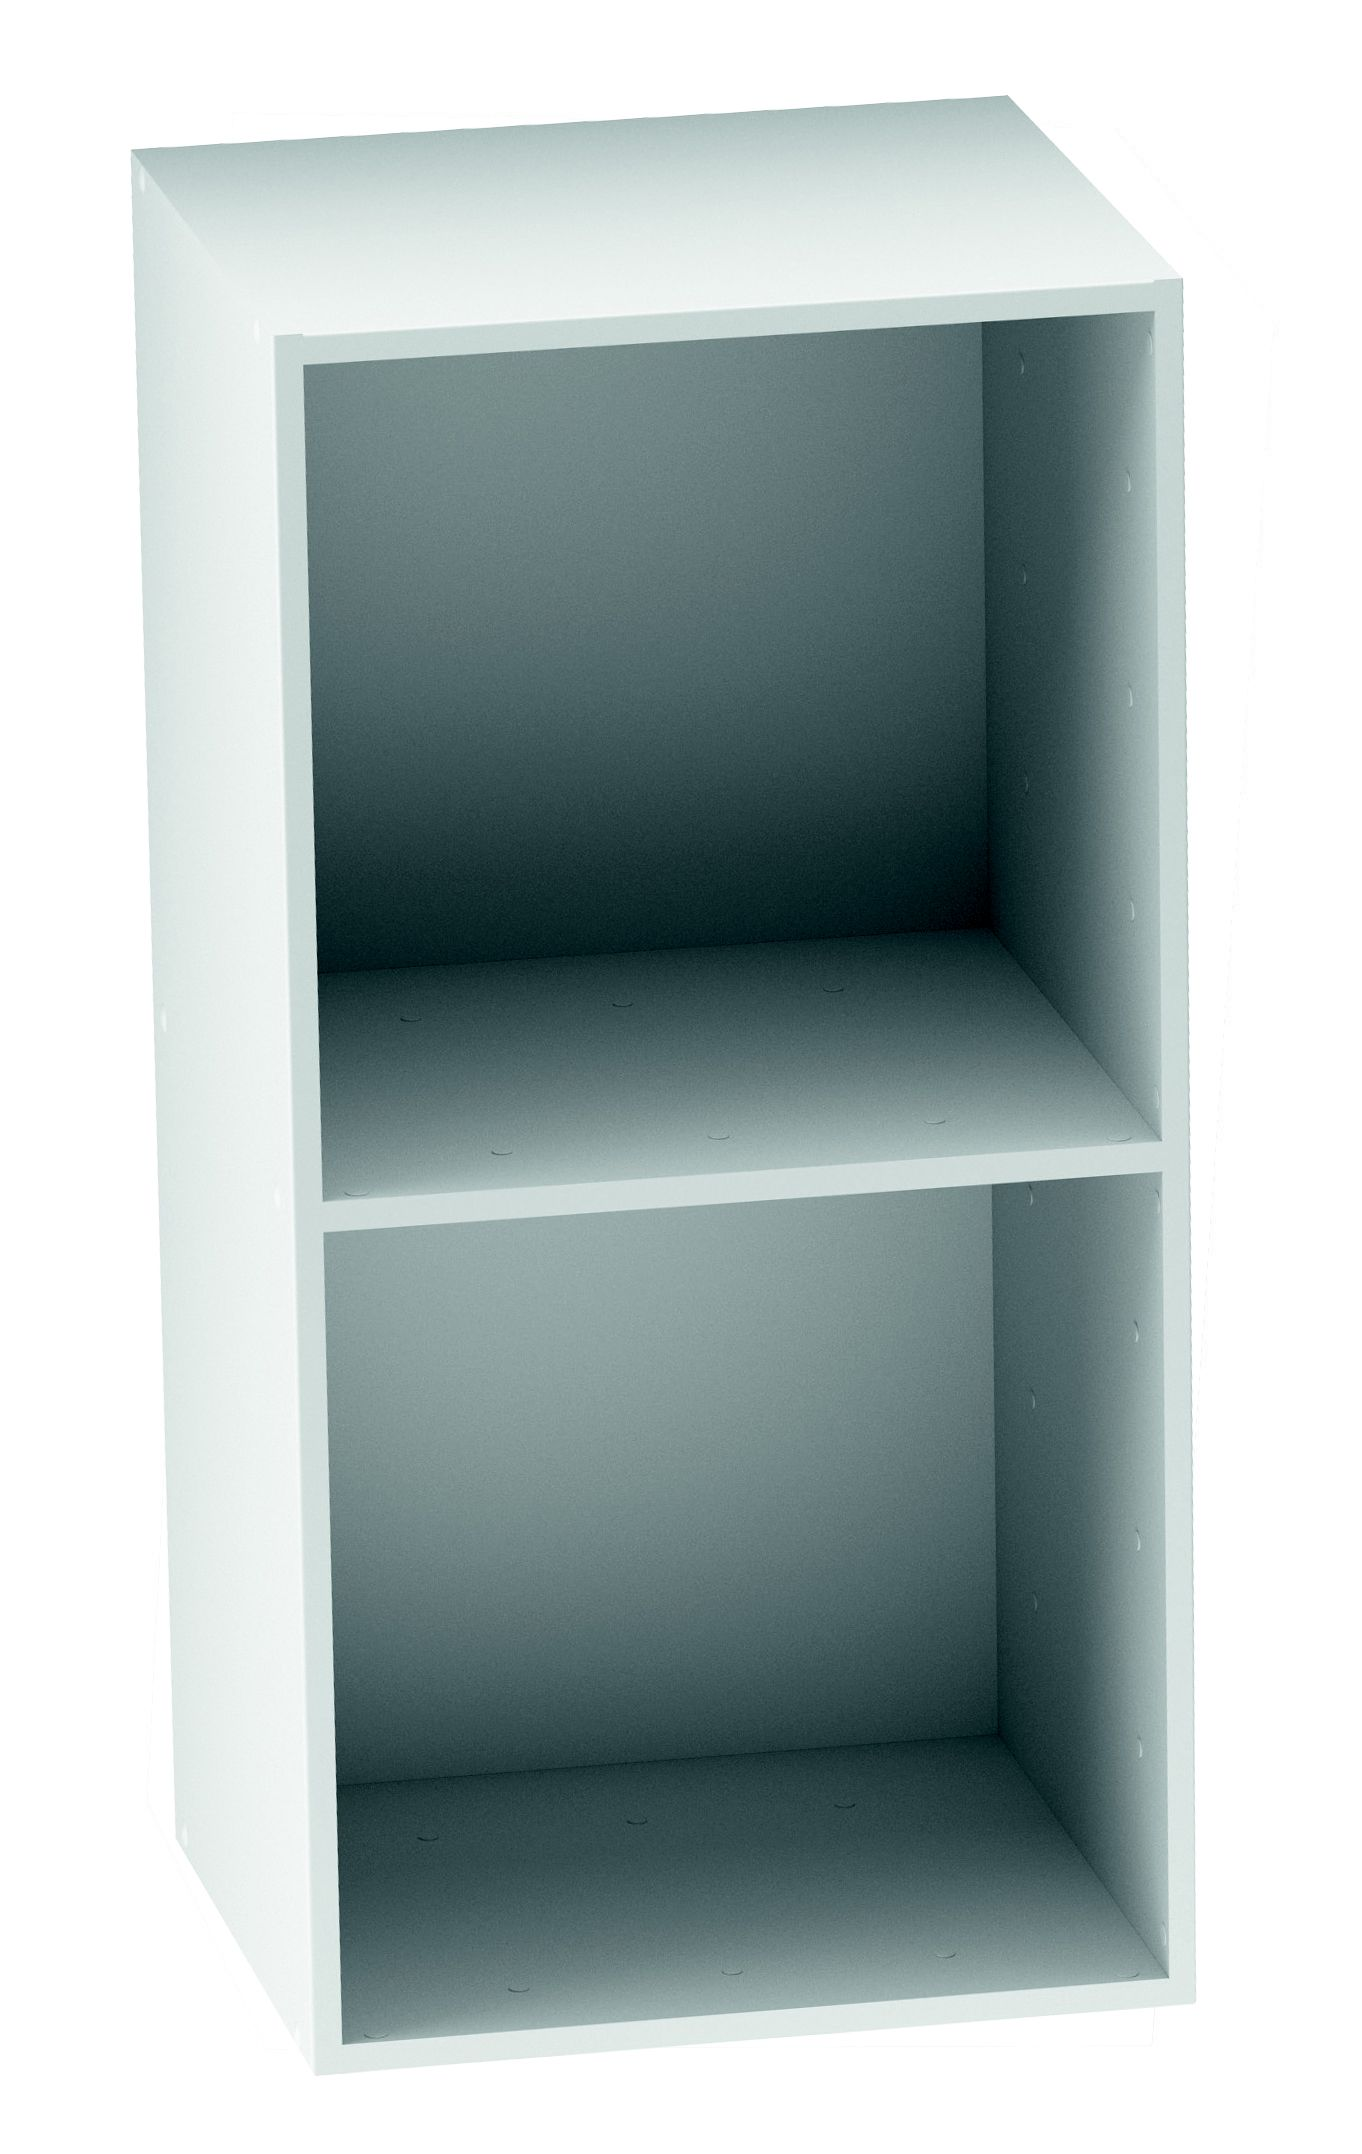 Form Konnect White 2 Cube Shelving Unit (H)692mm (W)352mm | Departments | DIY at Bu0026Q  sc 1 st  Bu0026Q & Form Konnect White 2 Cube Shelving Unit (H)692mm (W)352mm ...